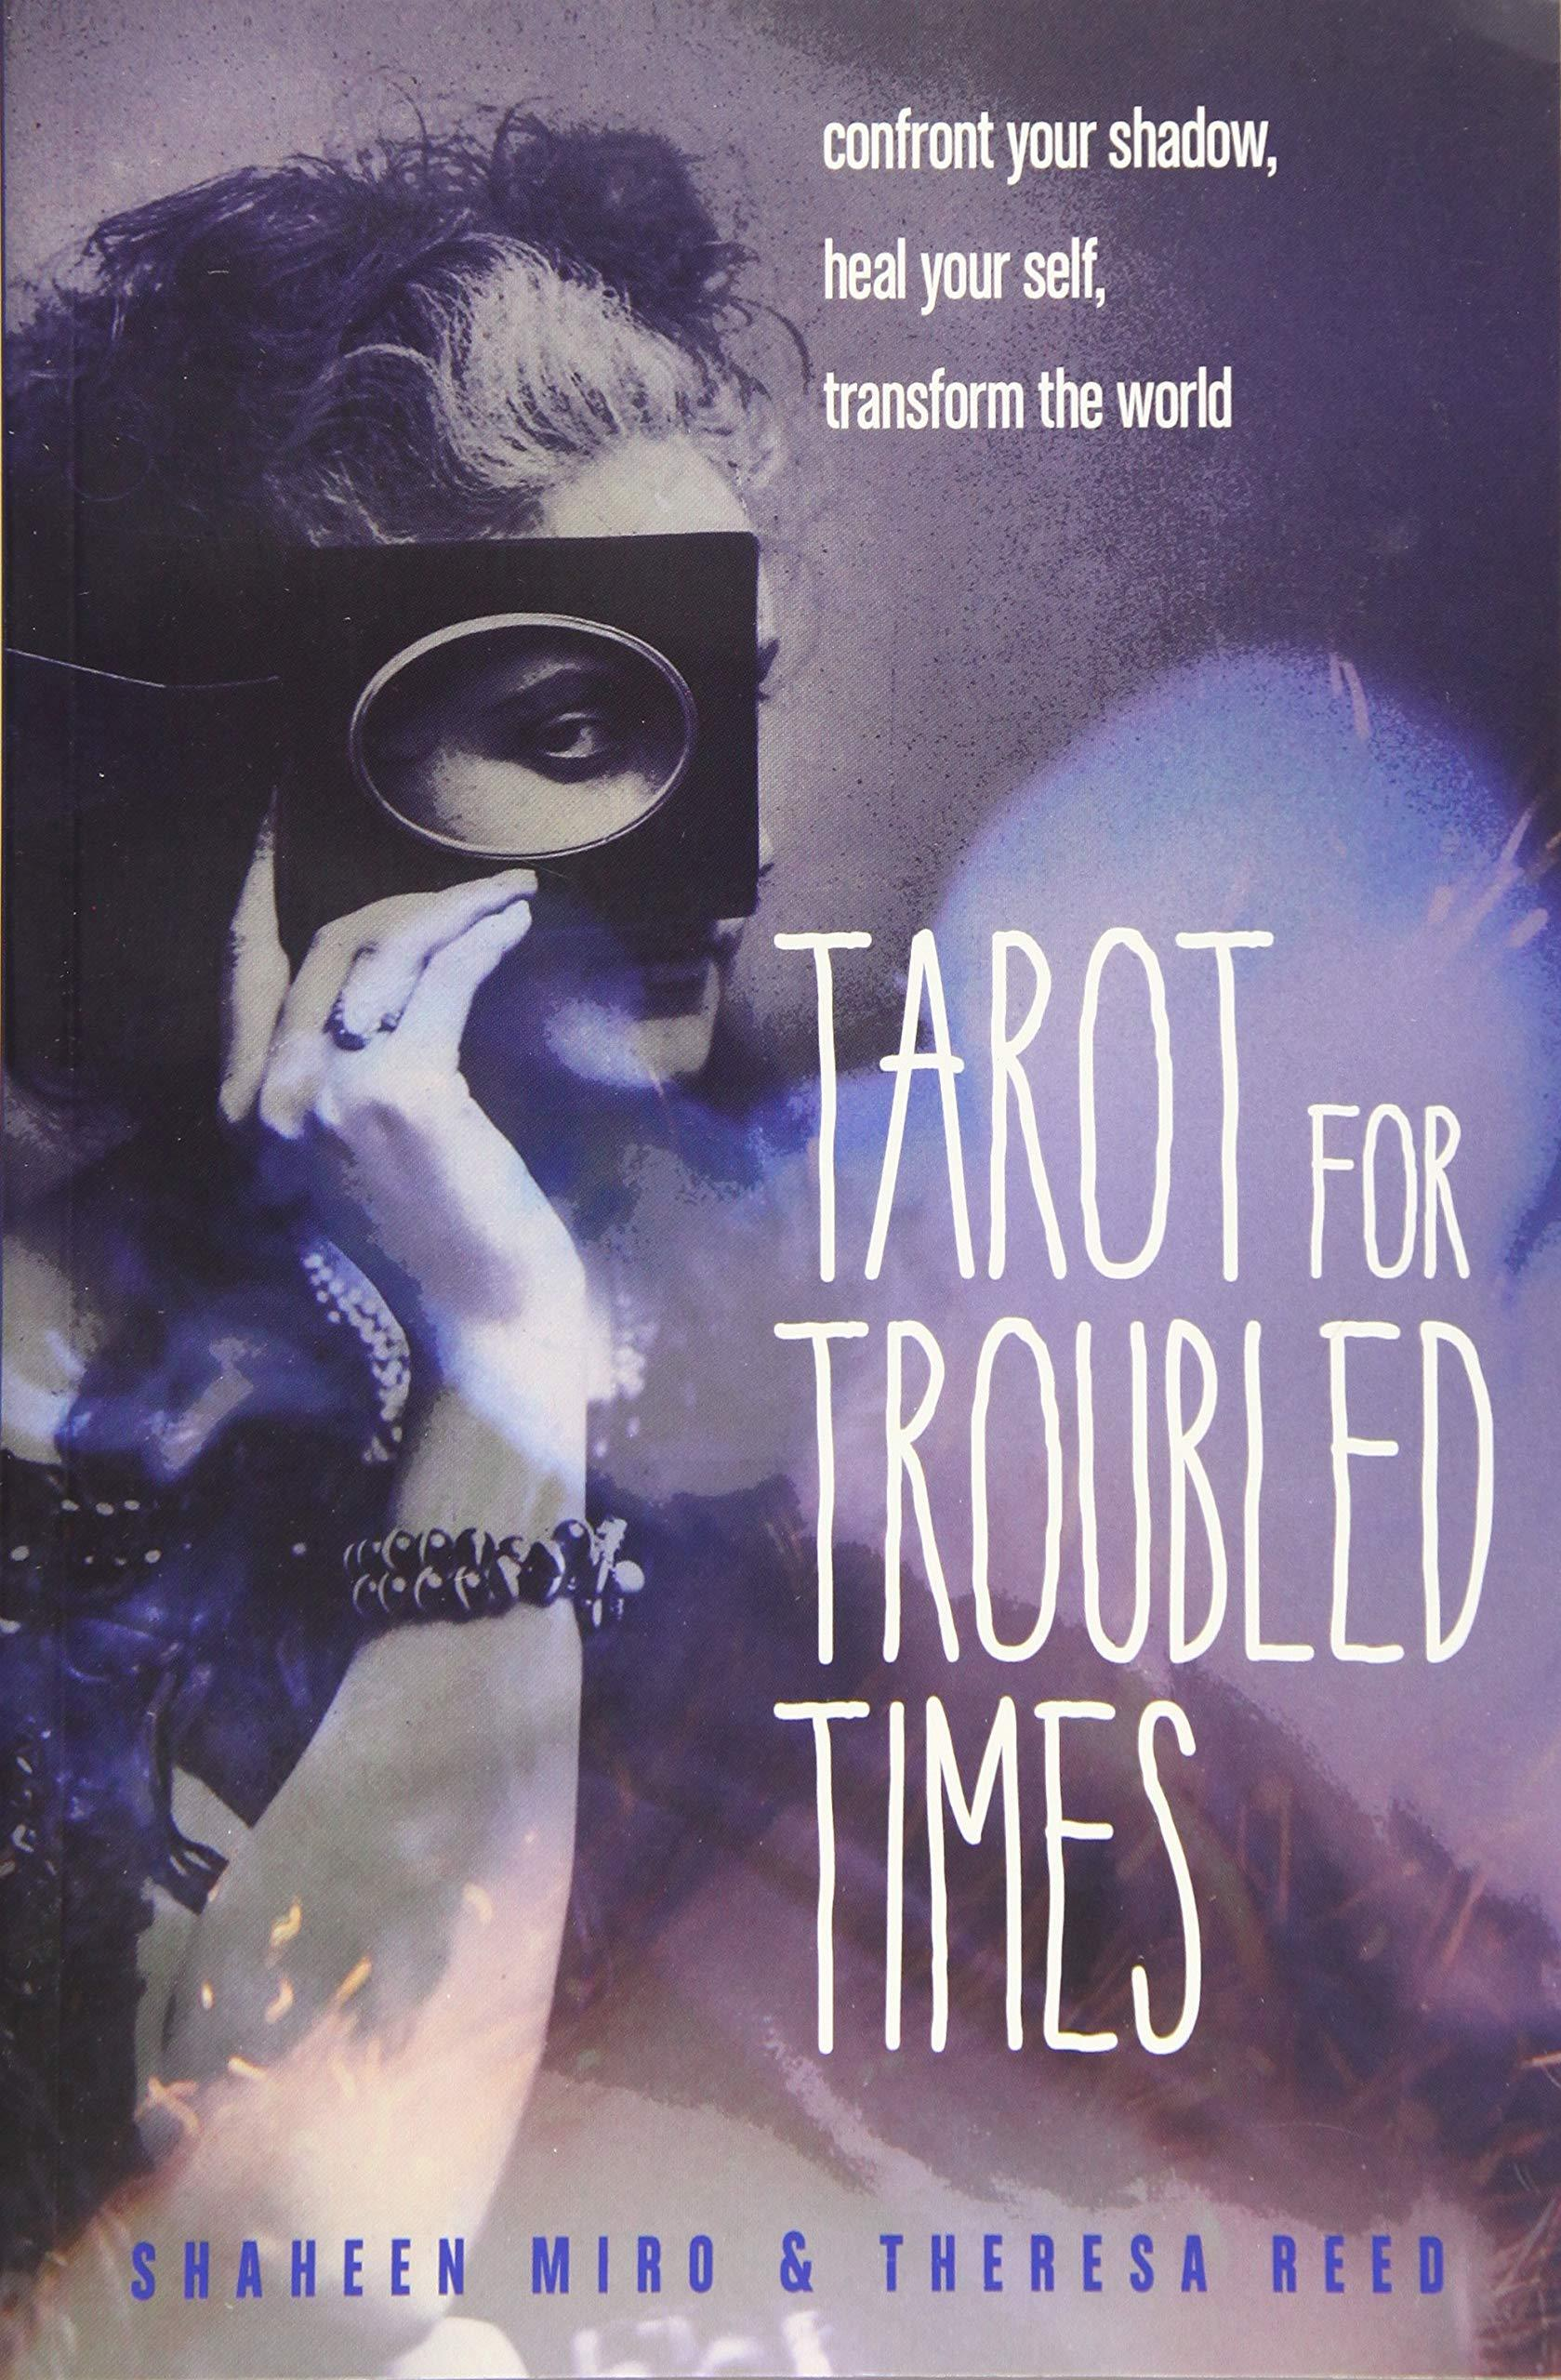 Tarot for Troubles Times Book